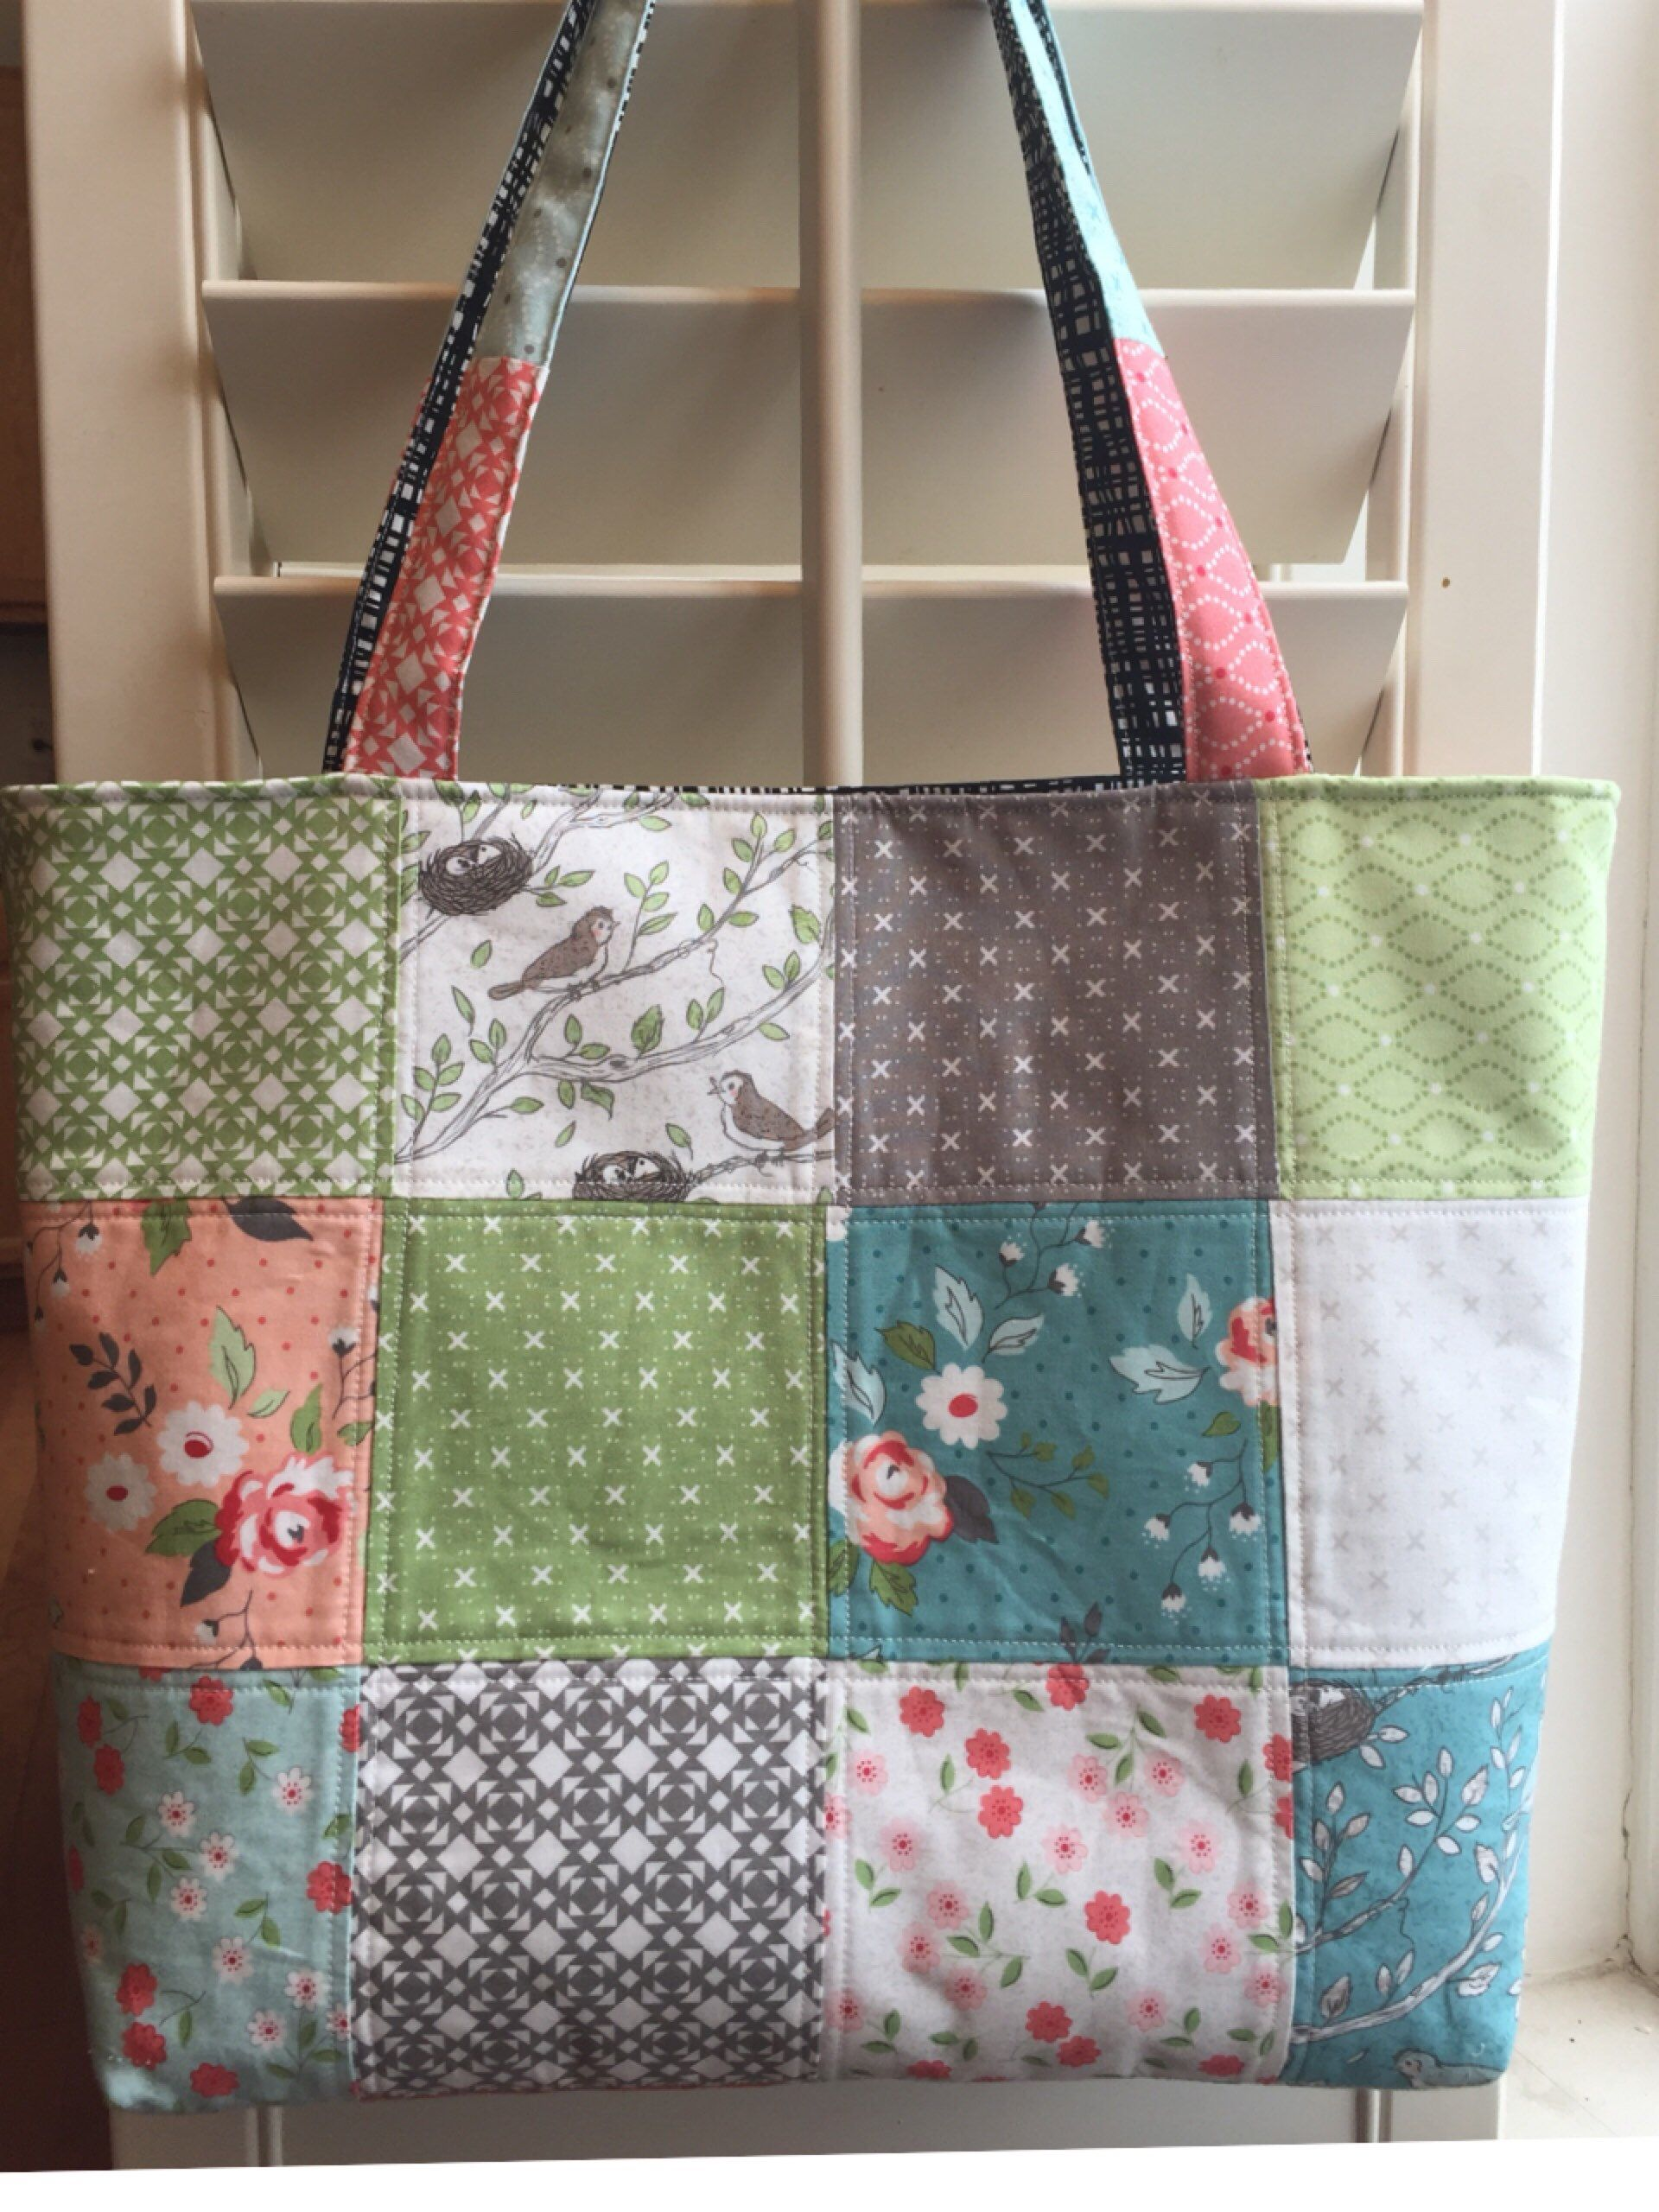 Summer Quilted tote bag ,Handmade quilting tote bag,shoulder bag,womens handbag, Gift for her,teacher, Mom